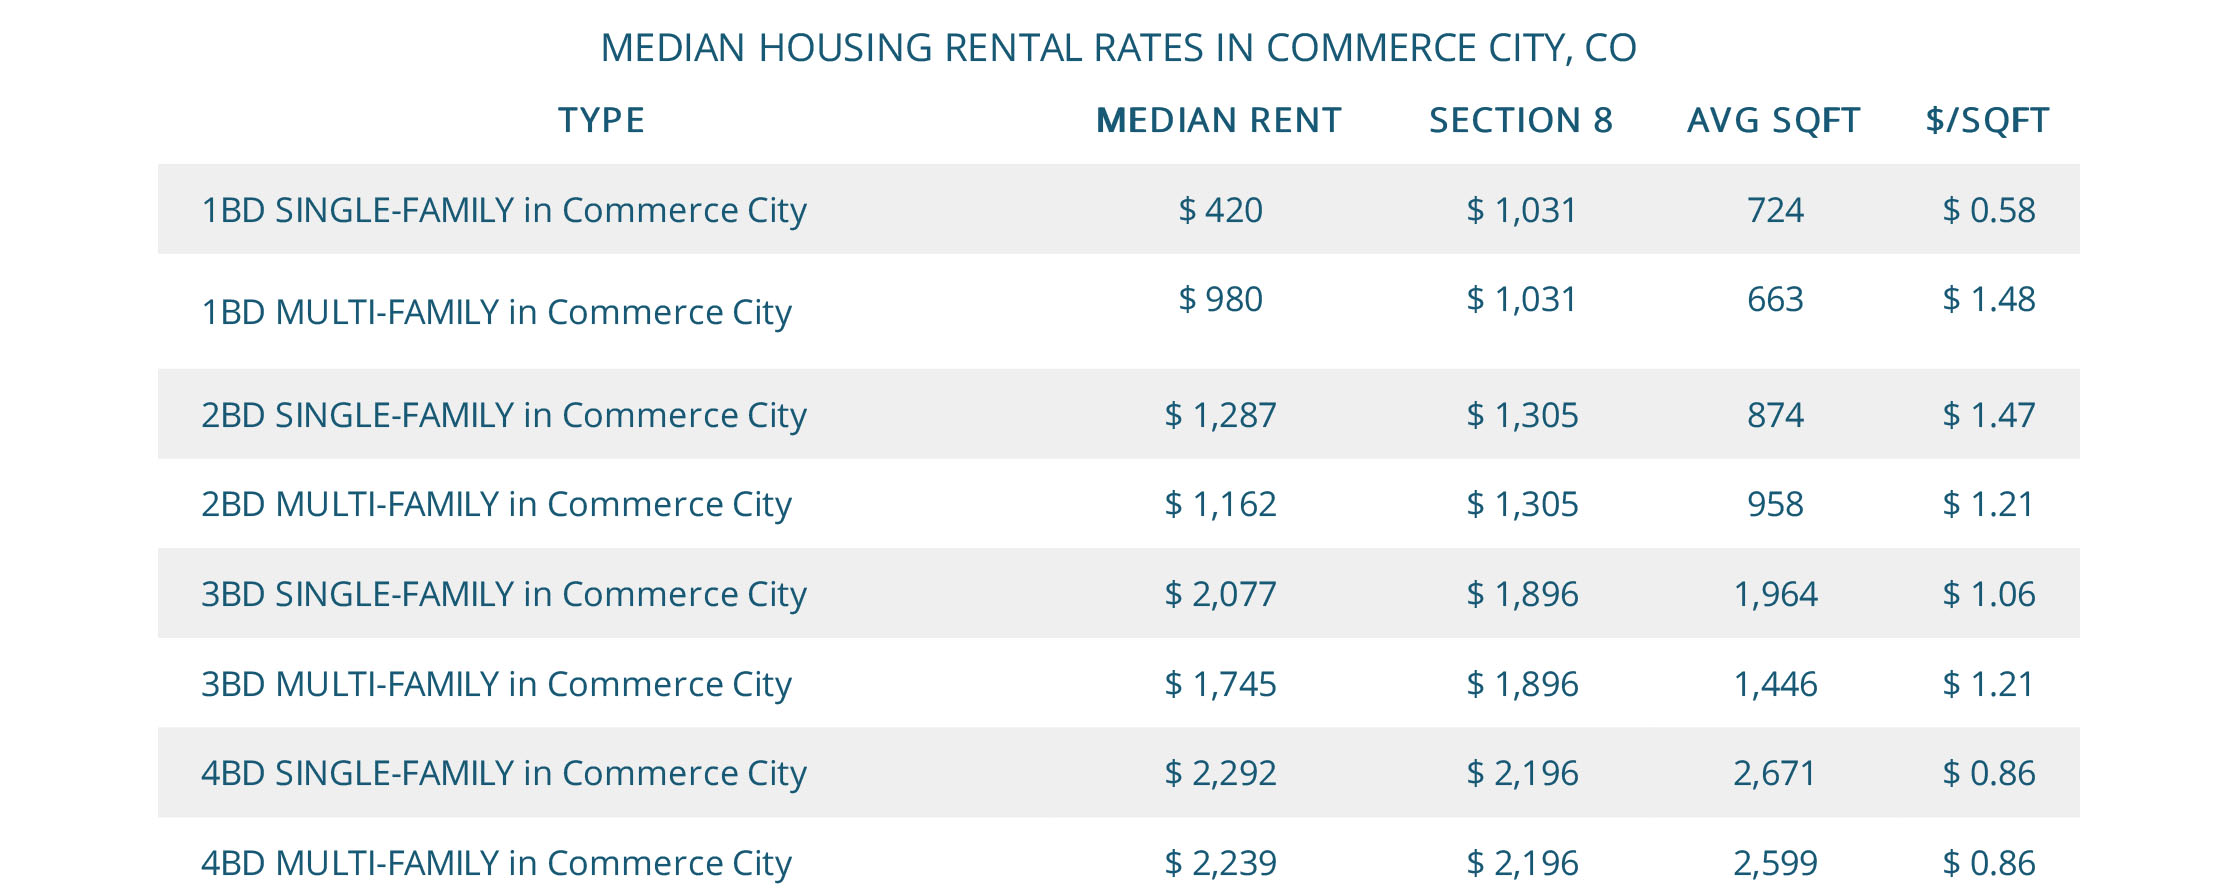 Median Commerce City Housing Rental Rates